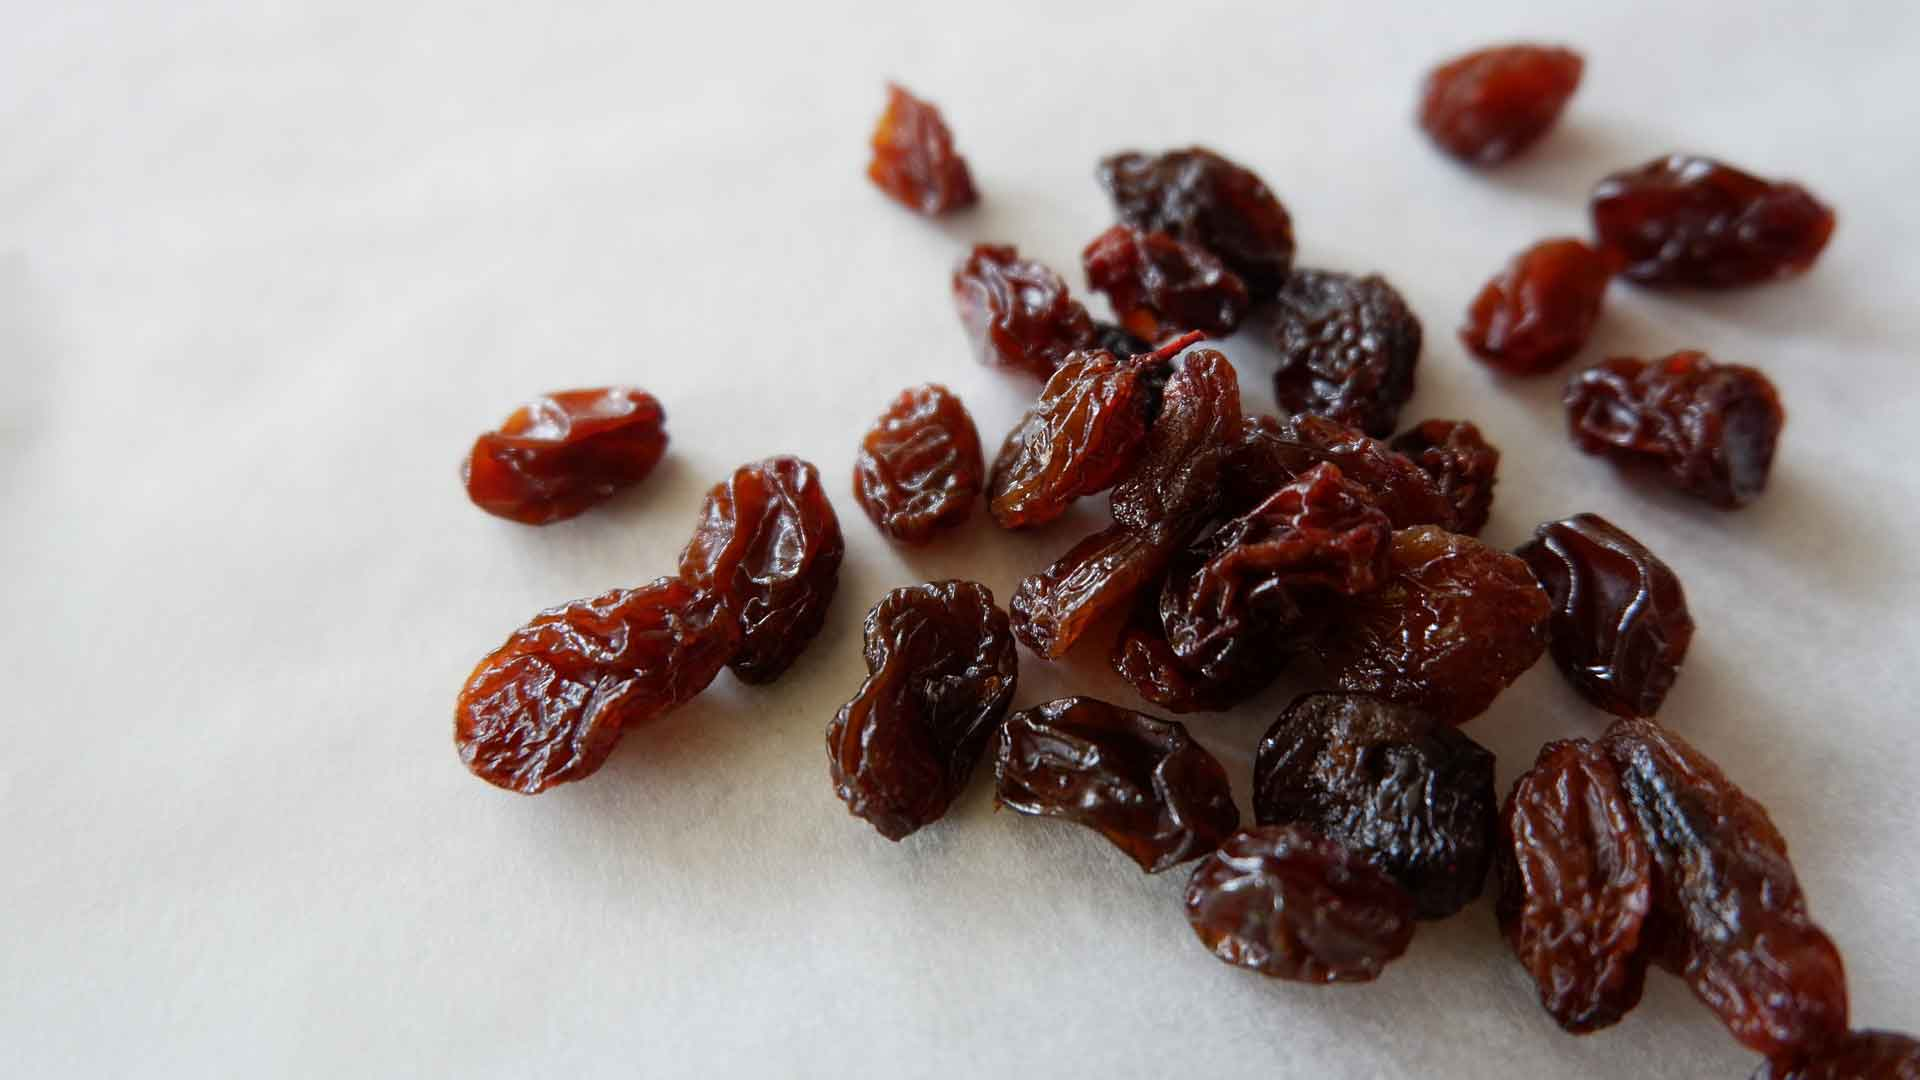 an image of raisins